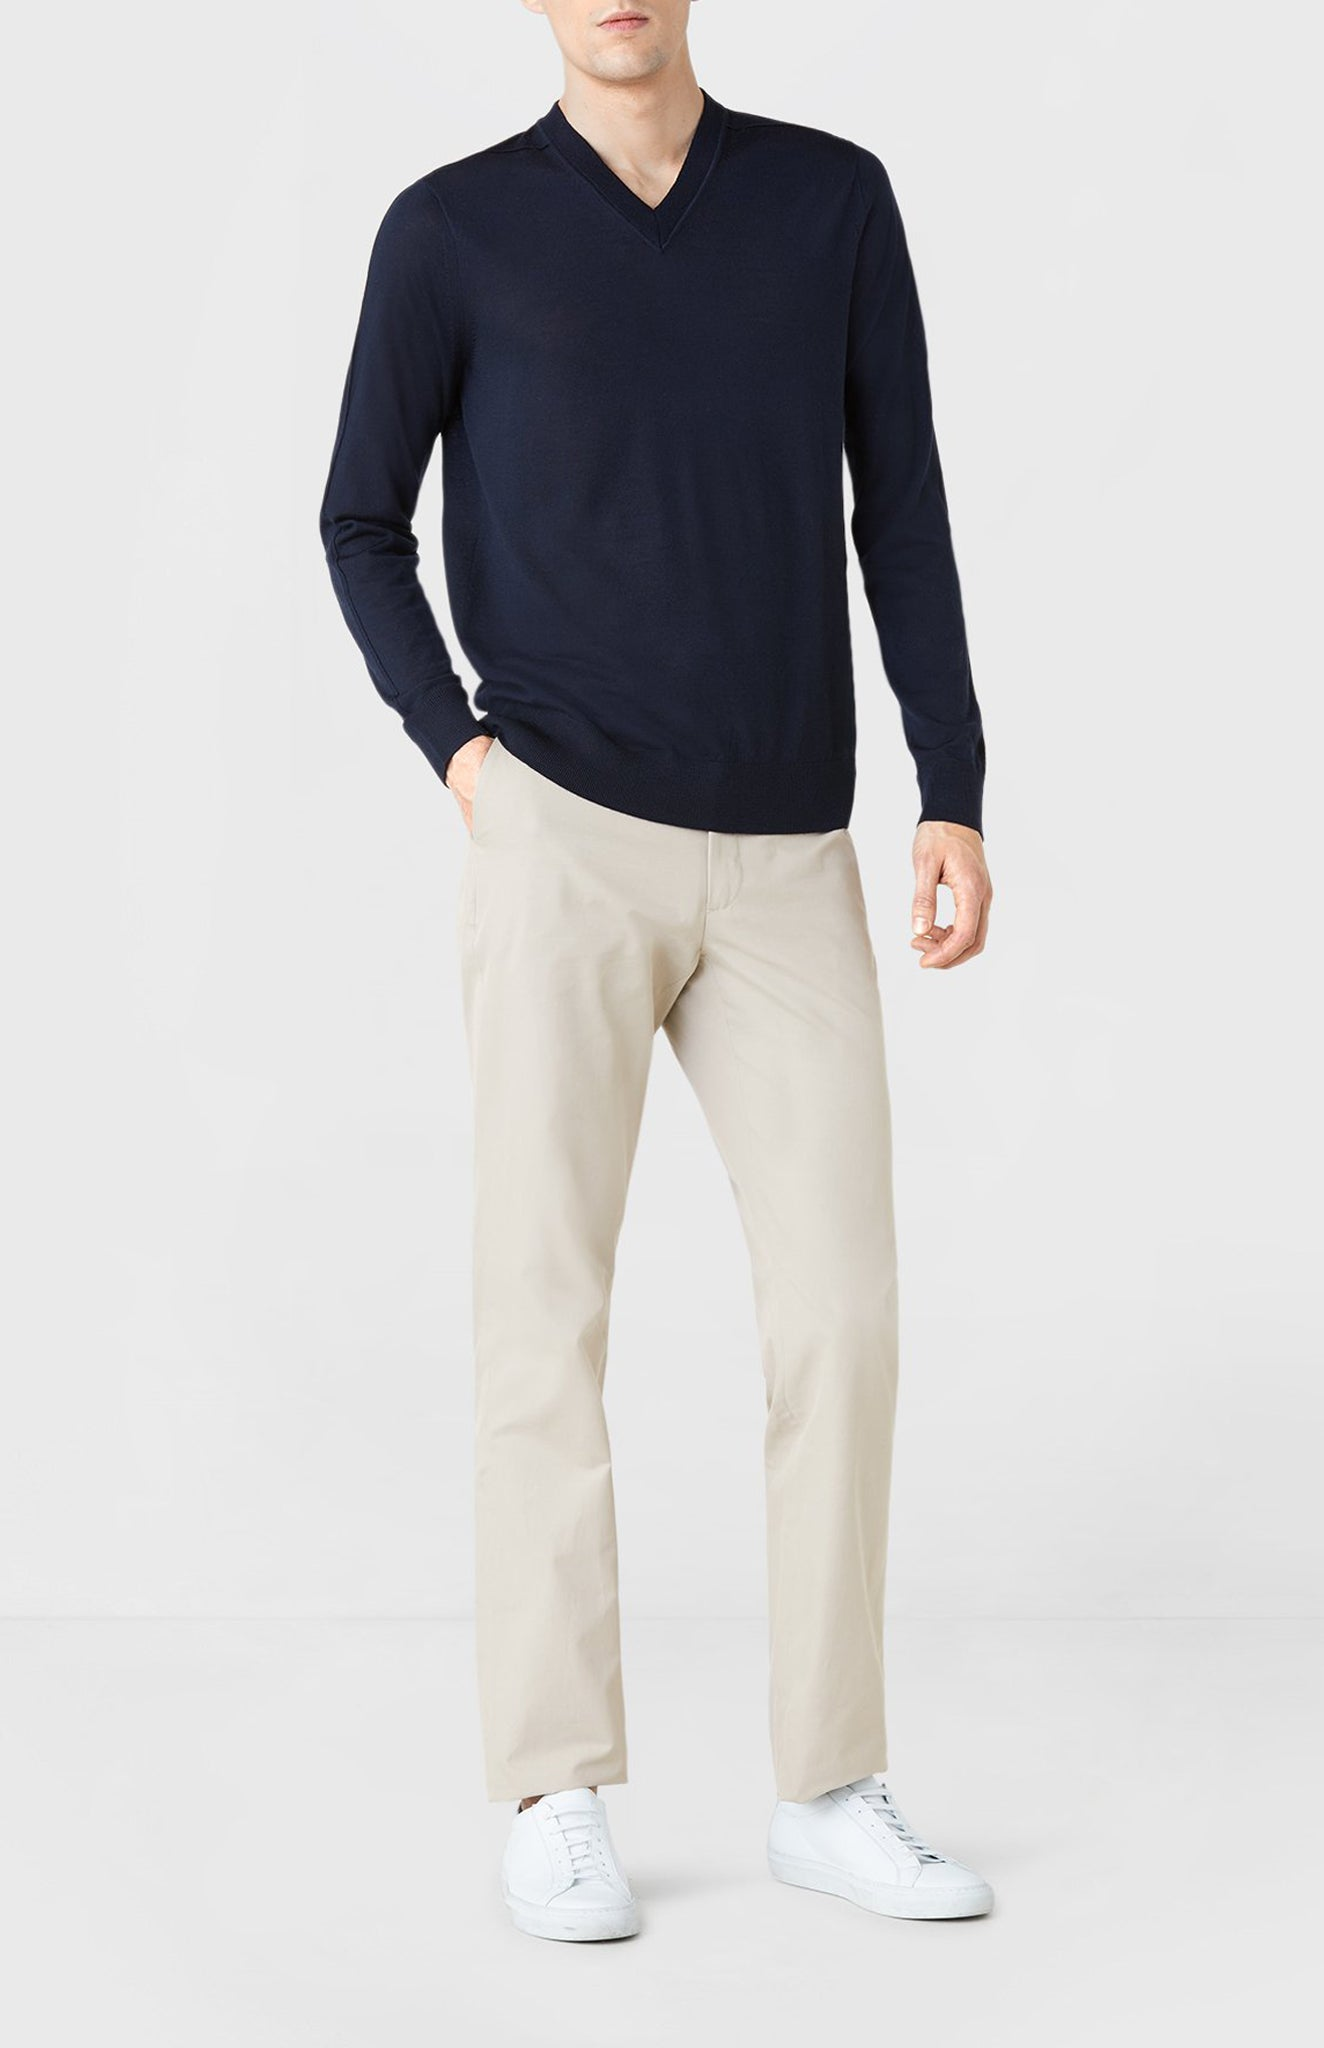 V-neck Merino Wool Jumper in Navy